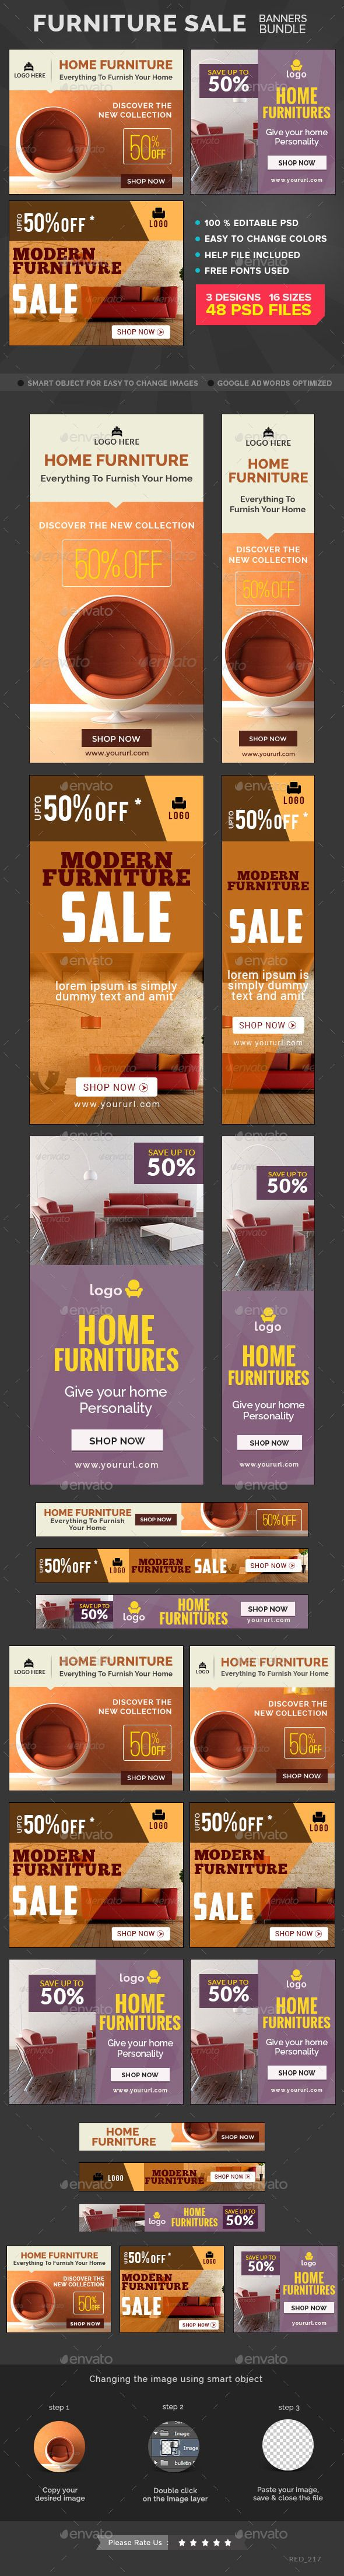 Furniture Sale Banners Bundle - 3 Sets #design Download: http://graphicriver.net/item/furniture-sale-banners-bundle-3-sets/11546086?ref=ksioks